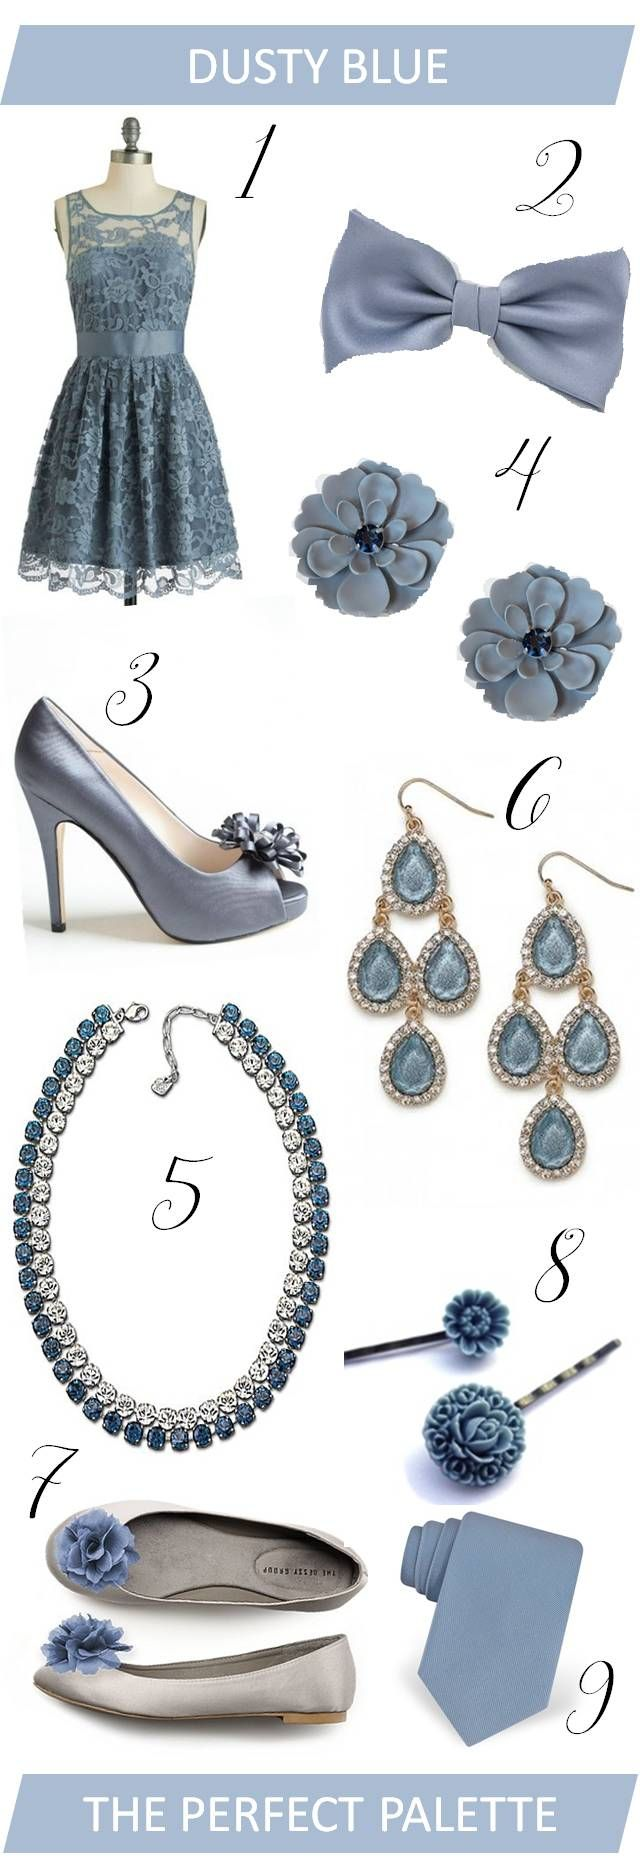 The Perfect Palette: {Wedding Wardrobe}: Dusty Blue